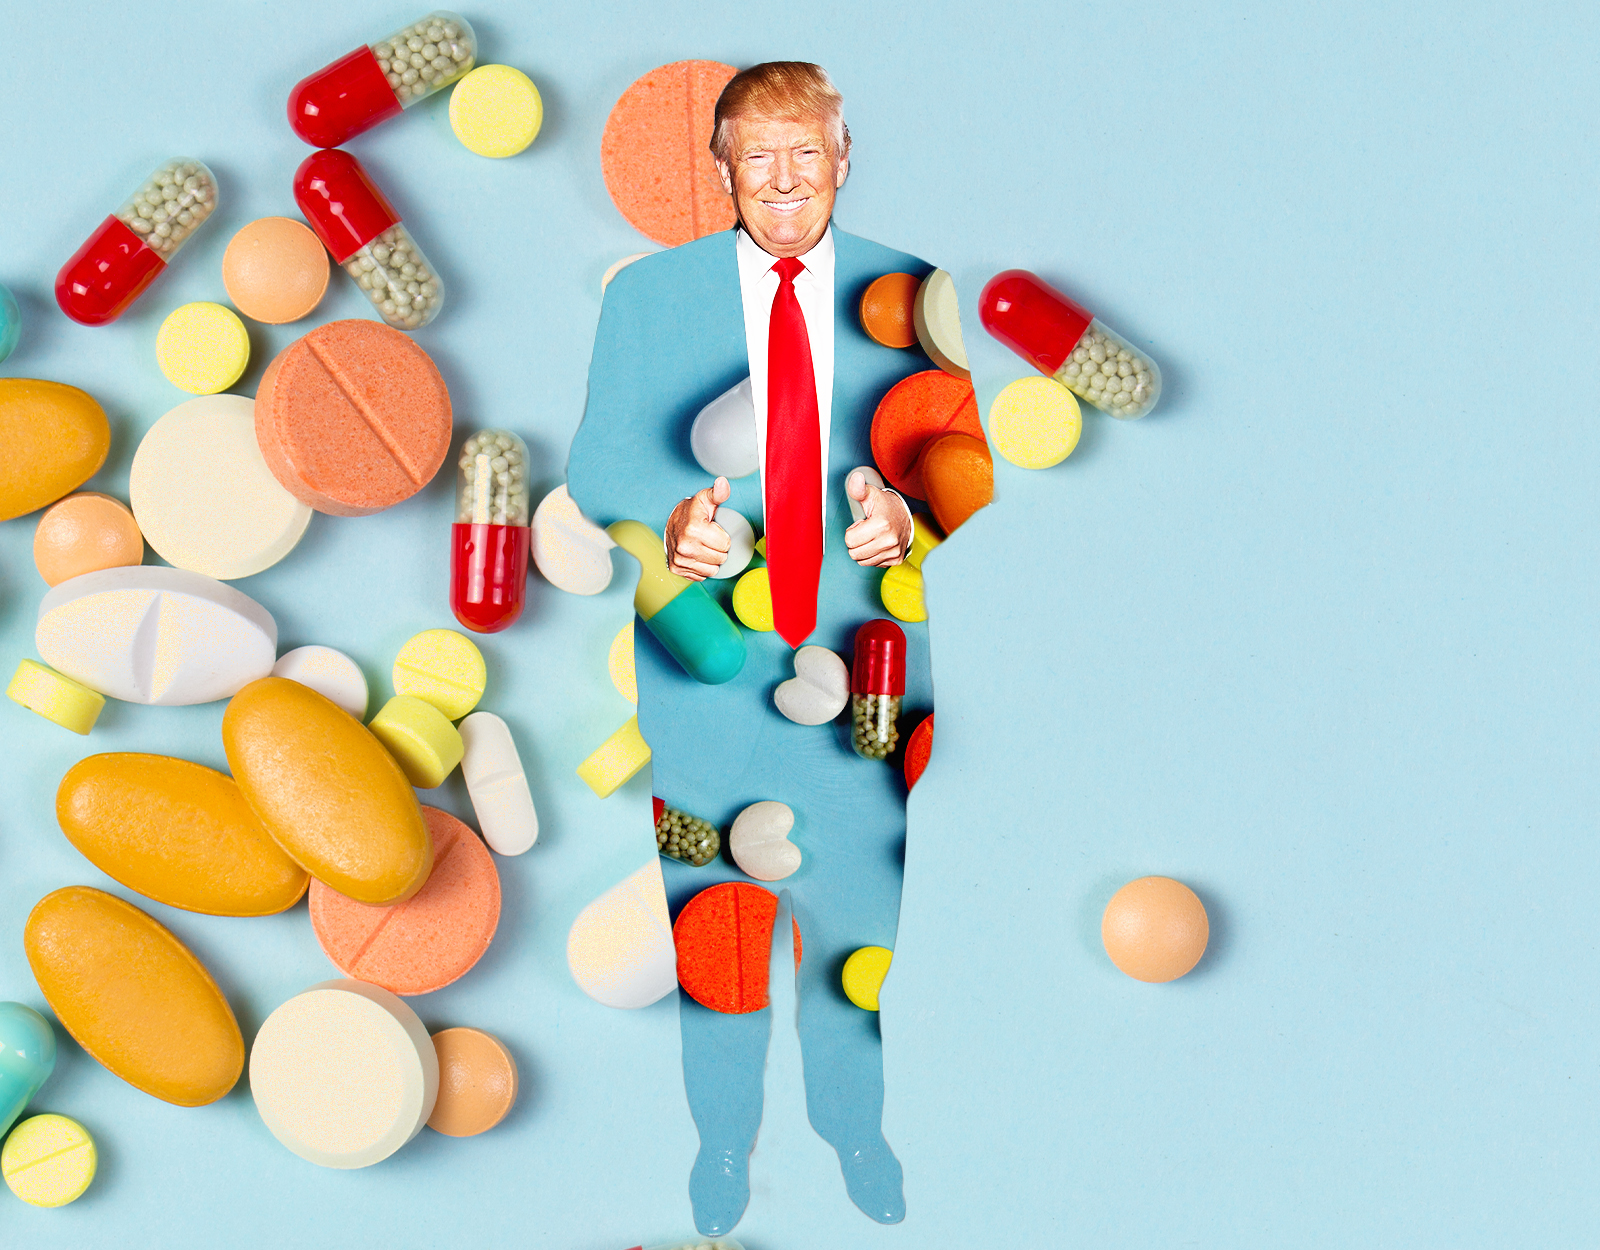 Trump's Desperate and Probably Illegal Ploy to Lower Drug Prices - The Bulwark